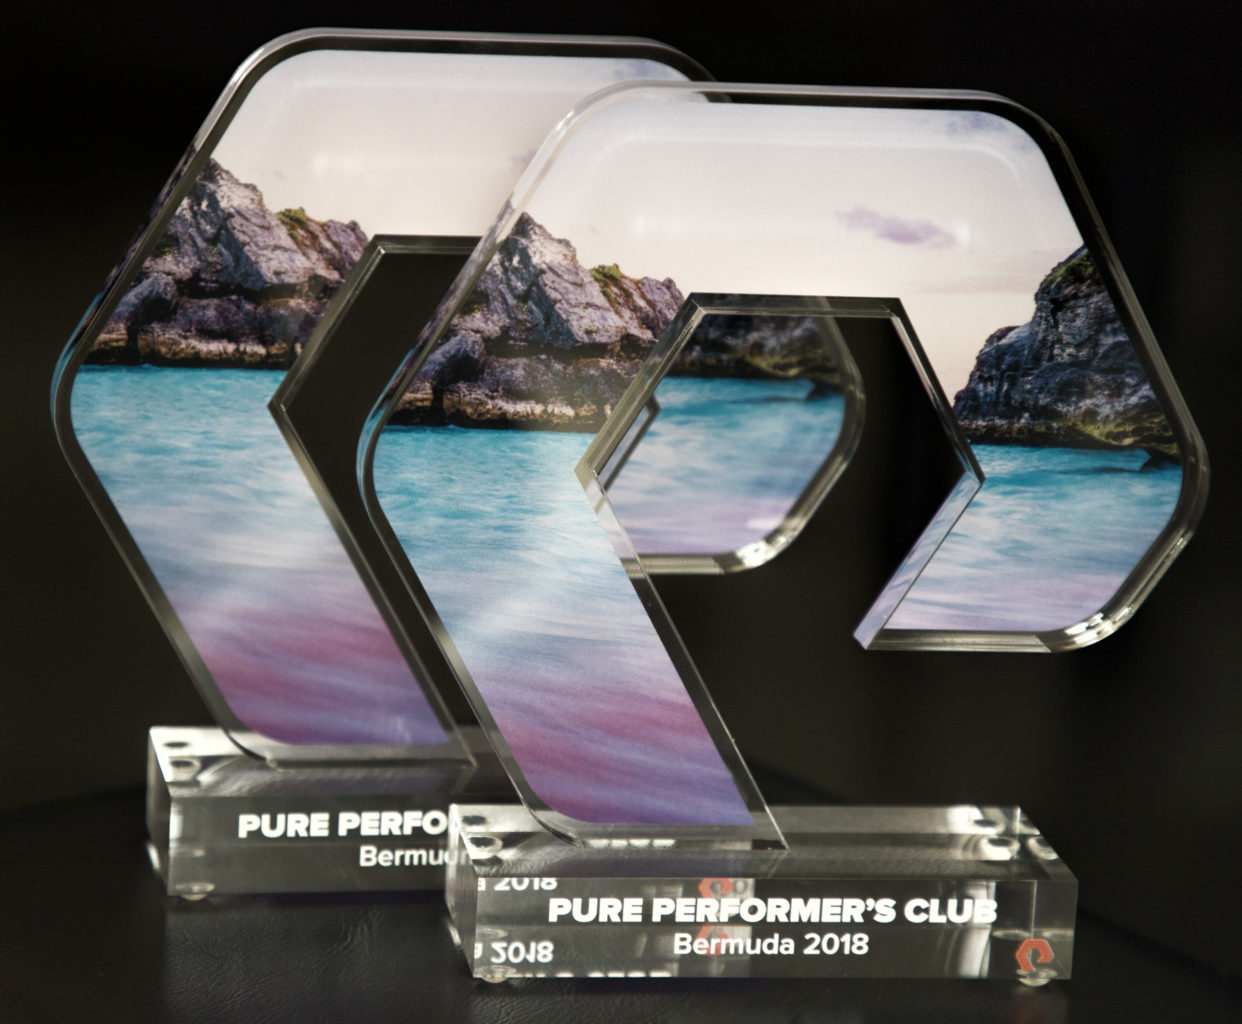 Packet Systems Indonesia confirmed to join an elite club of Pure Performance's Club